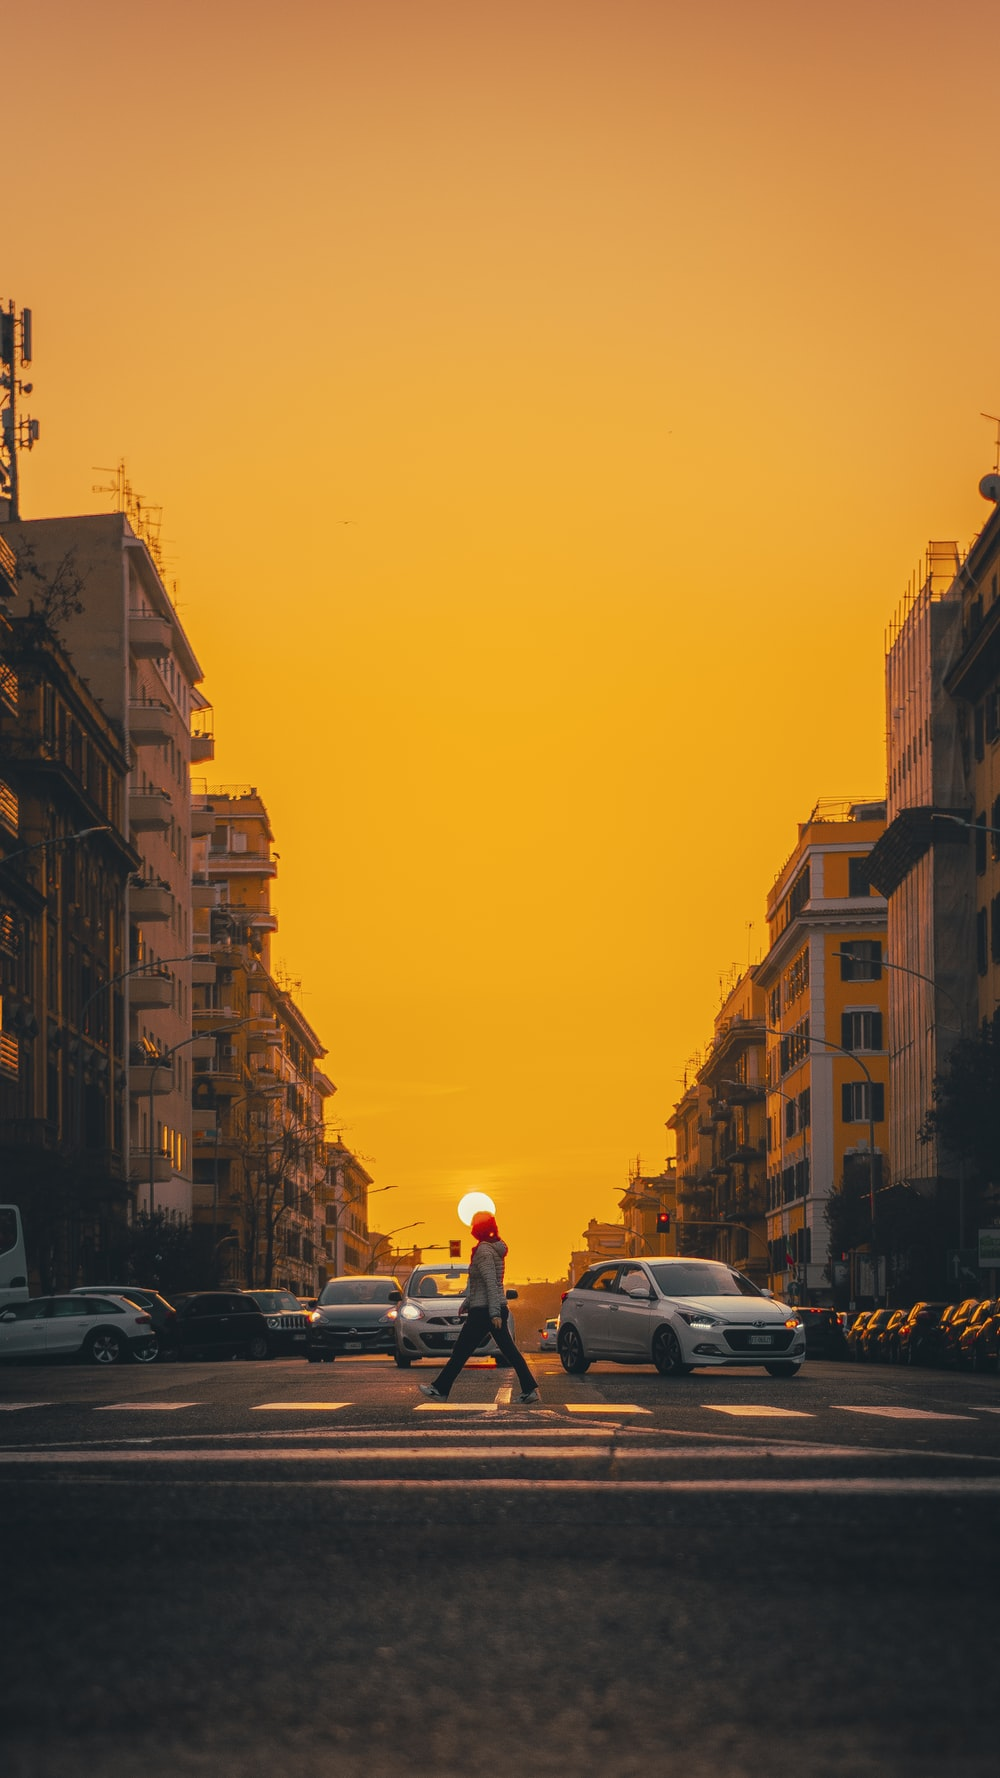 man in gray jacket and black pants walking on street during sunset